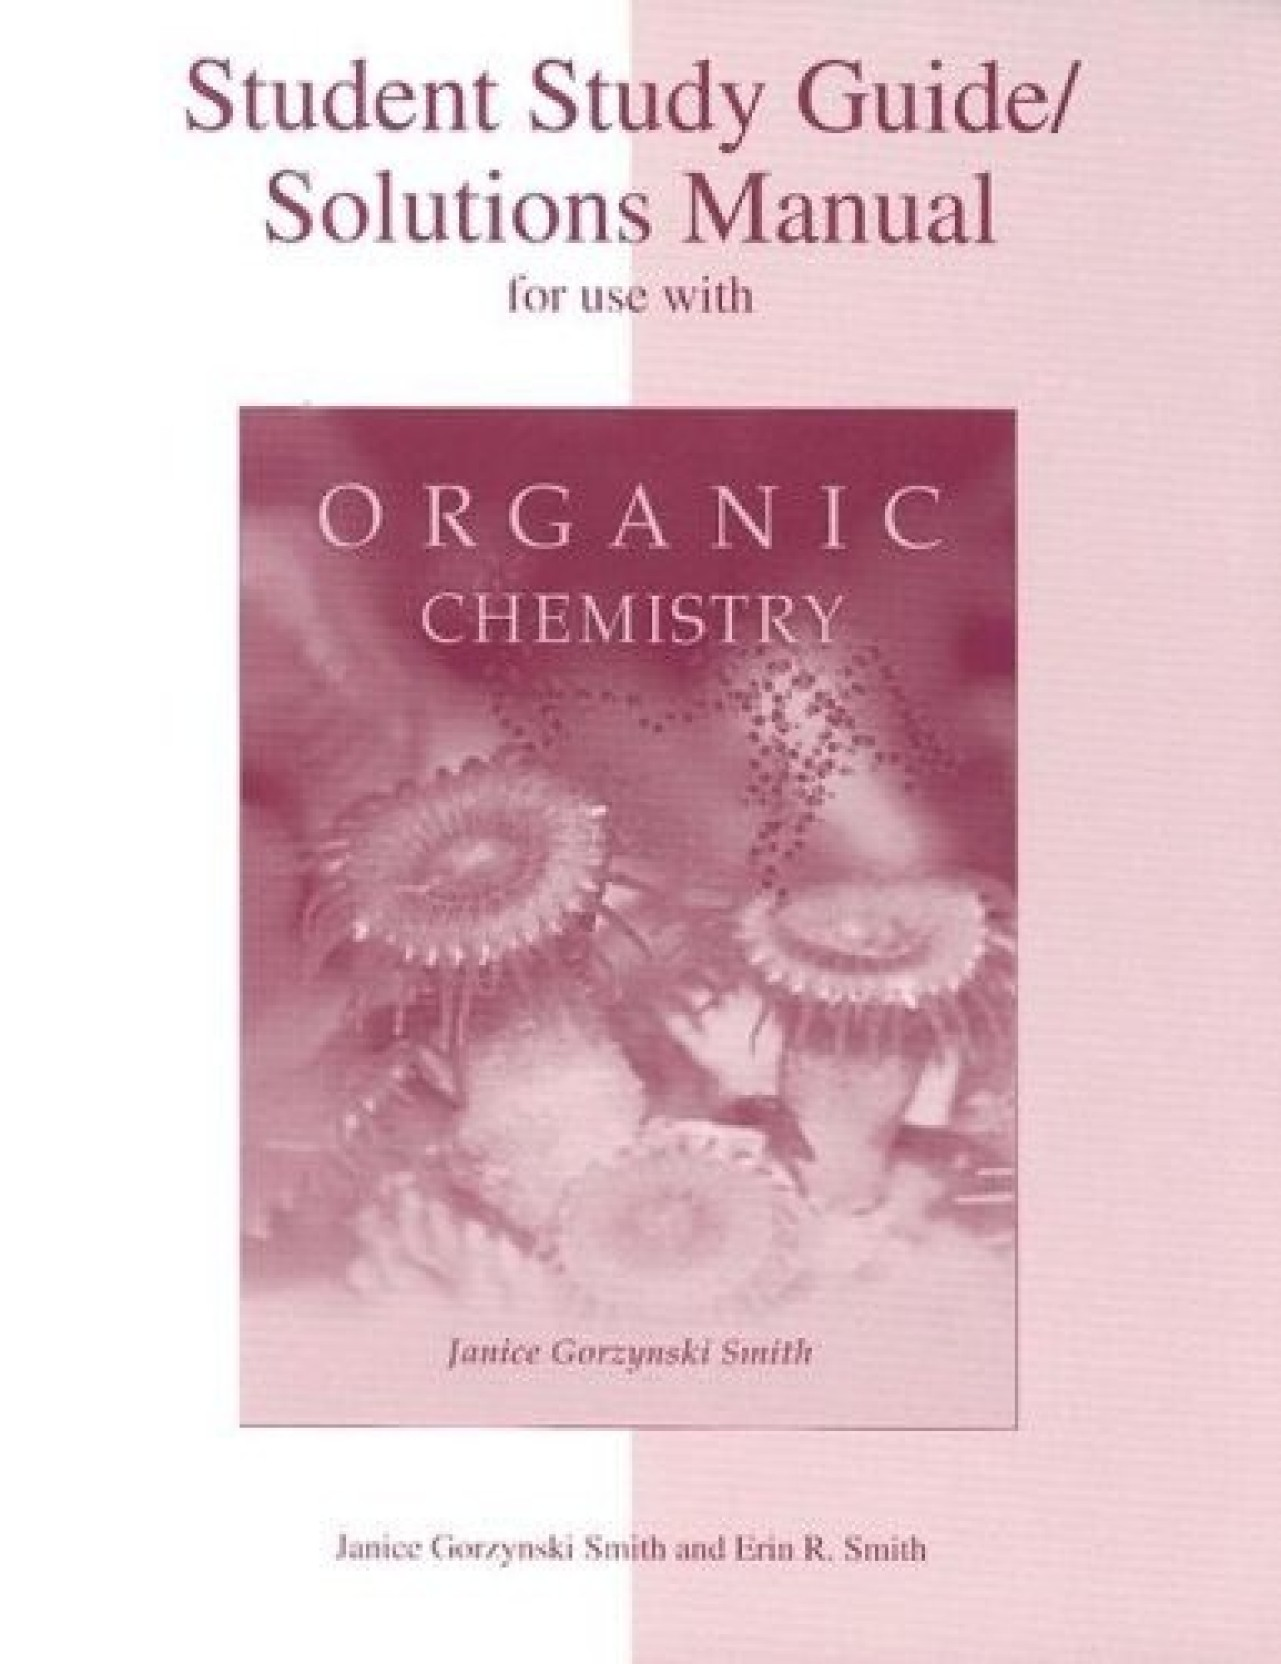 Student Study Guide/Solutions Manual for use with Organic Chemistry. Share